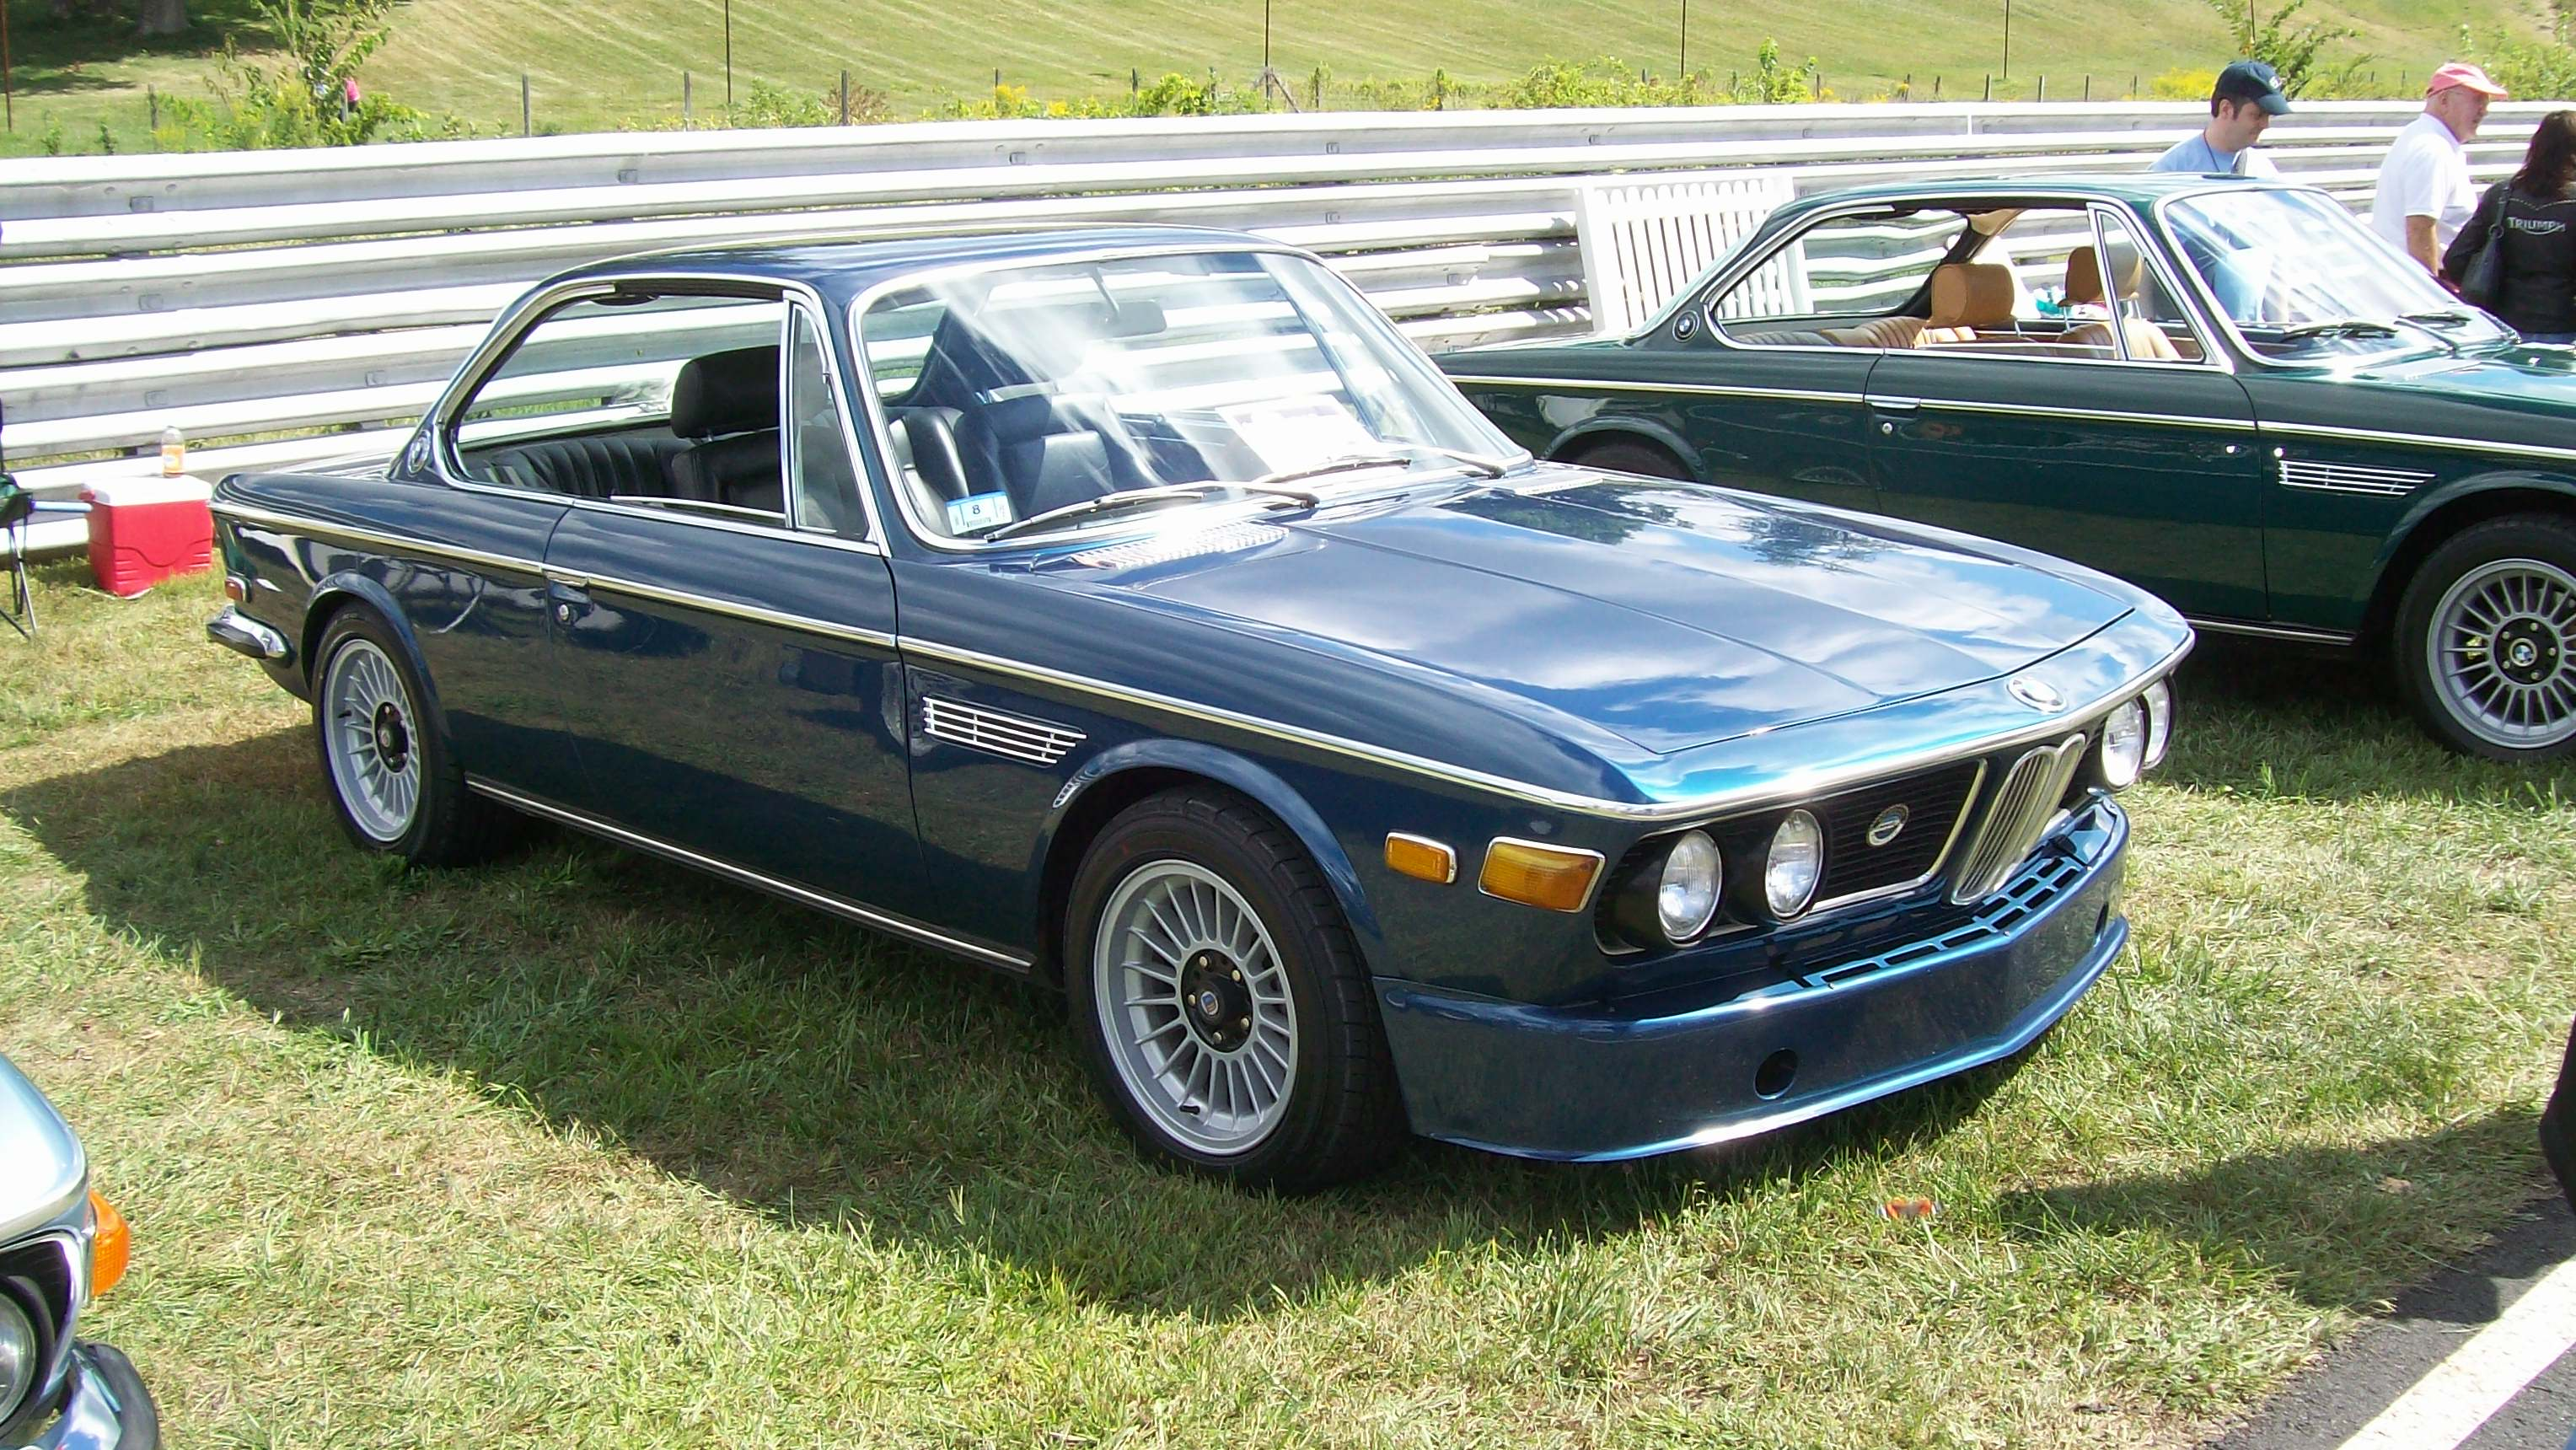 E9 bmw 3 0 csl in chamonix white probably racing in classic group 1 for touring cars bmw 2 5 cs 3 0 csl pinterest bmw and cars